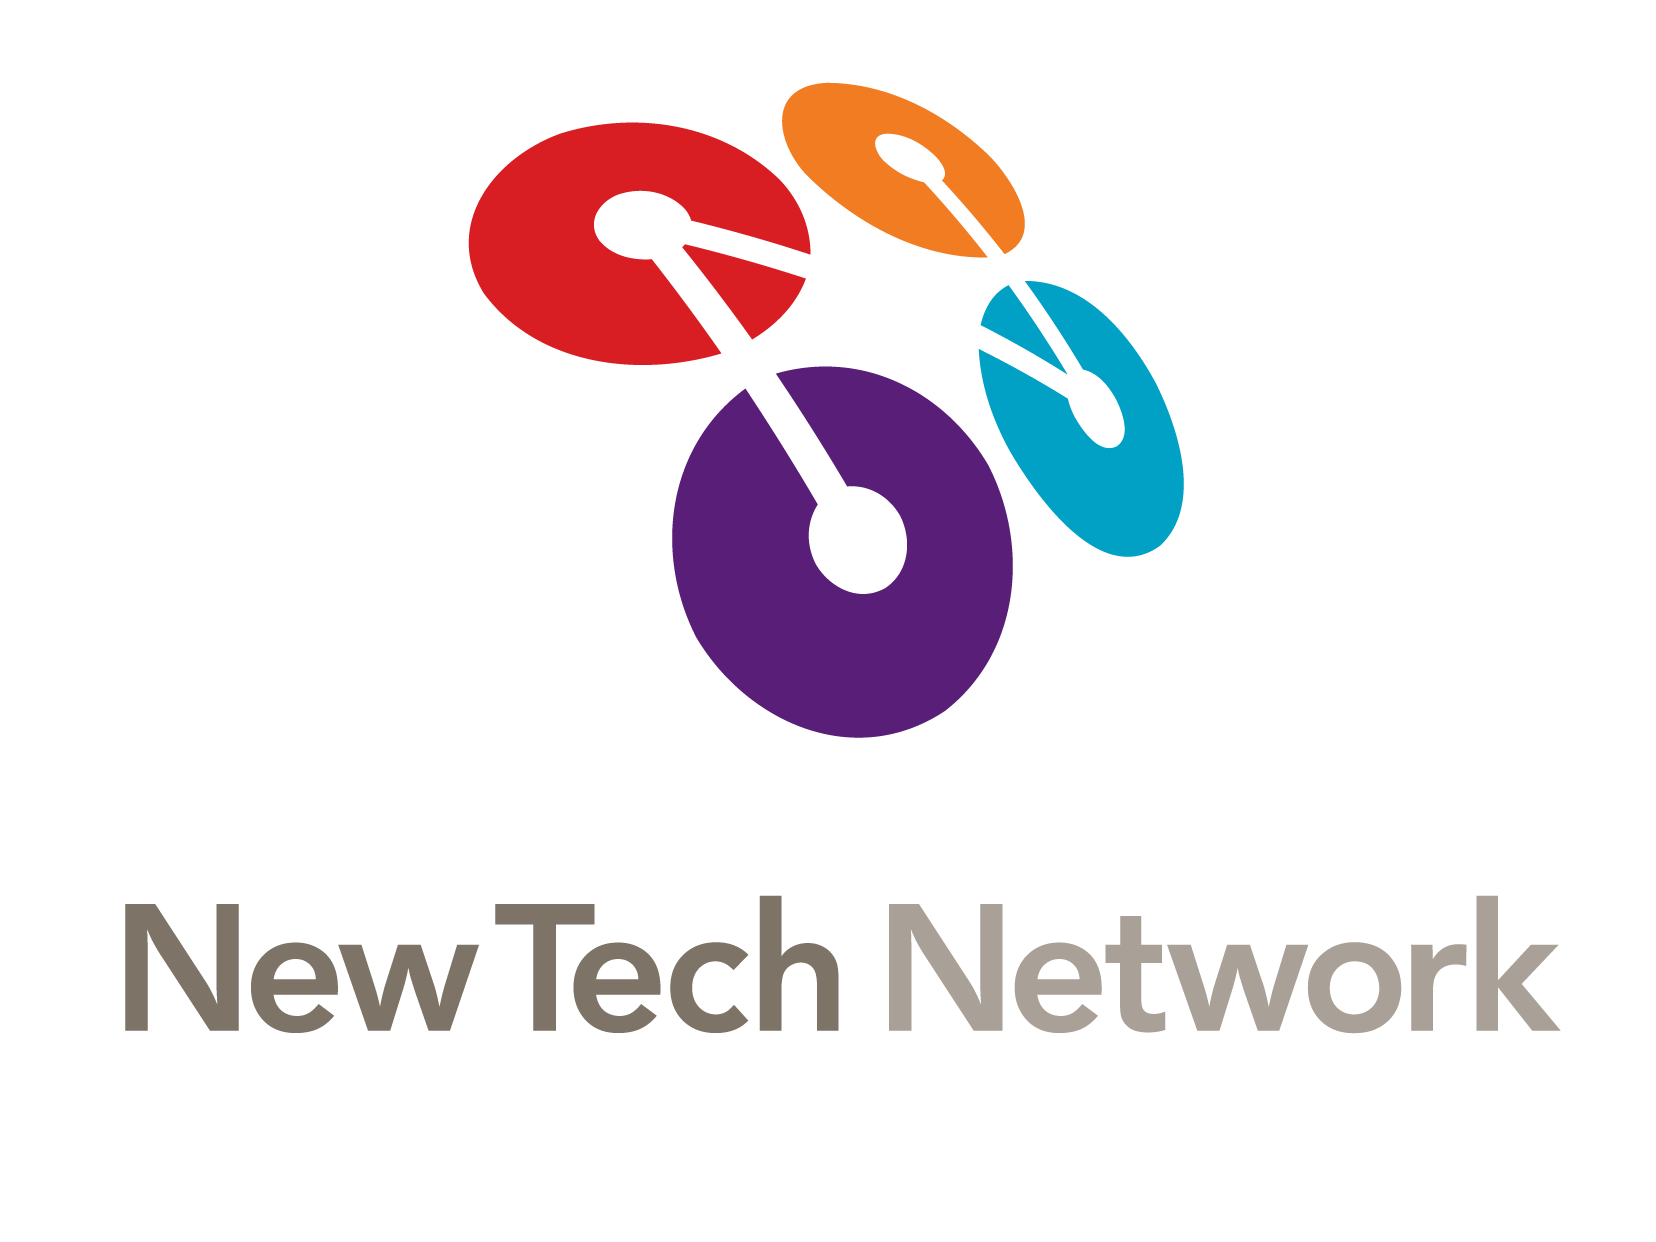 New Tech Network Receives Grant to Support Rural and Town School Districts in Texas